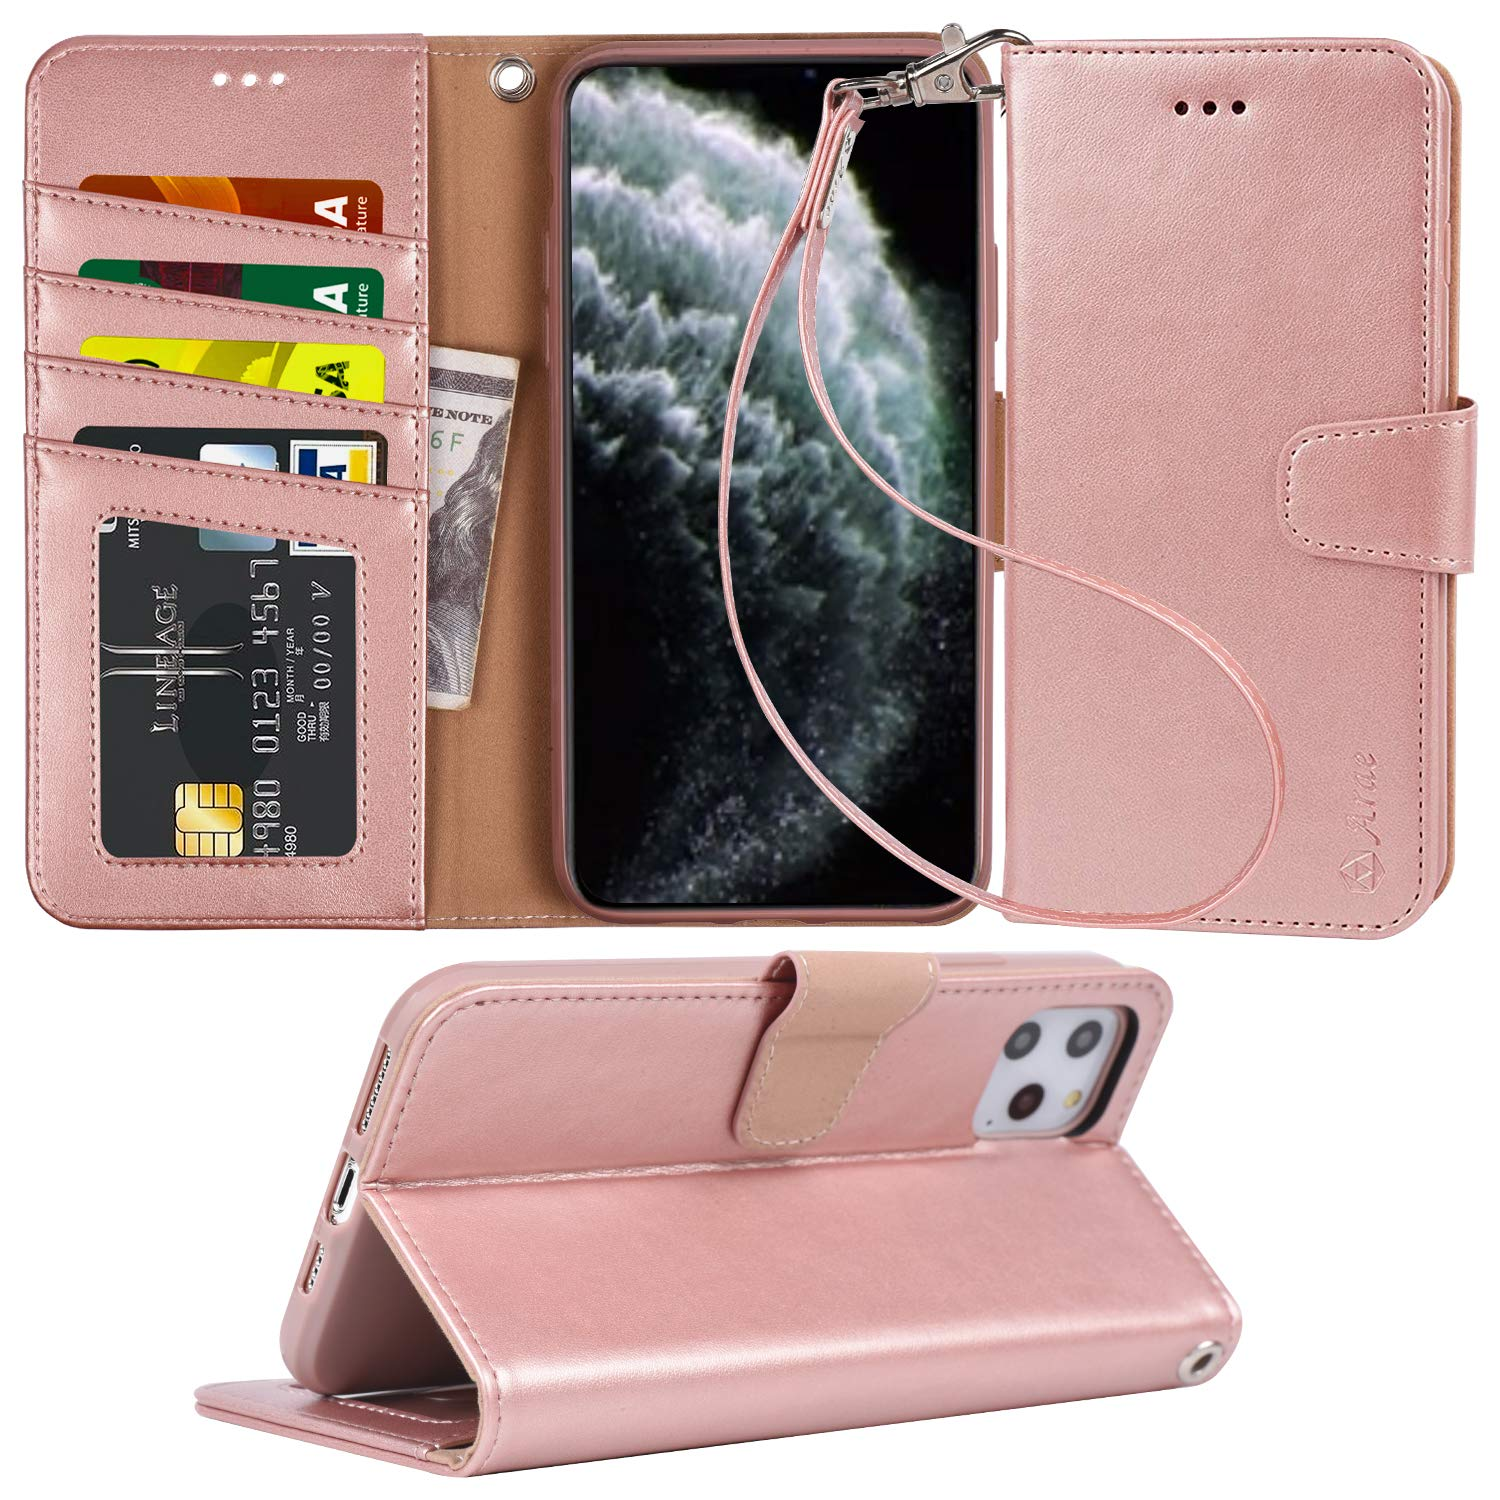 Arae Case for iPhone 11 Pro Max PU Leather Wallet Case Cover [Stand Feature] with Wrist Strap and [4-Slots] ID&Credit Cards Pocket for iPhone 11 Pro Max 6.5 inch 2019 Released - Rosegold